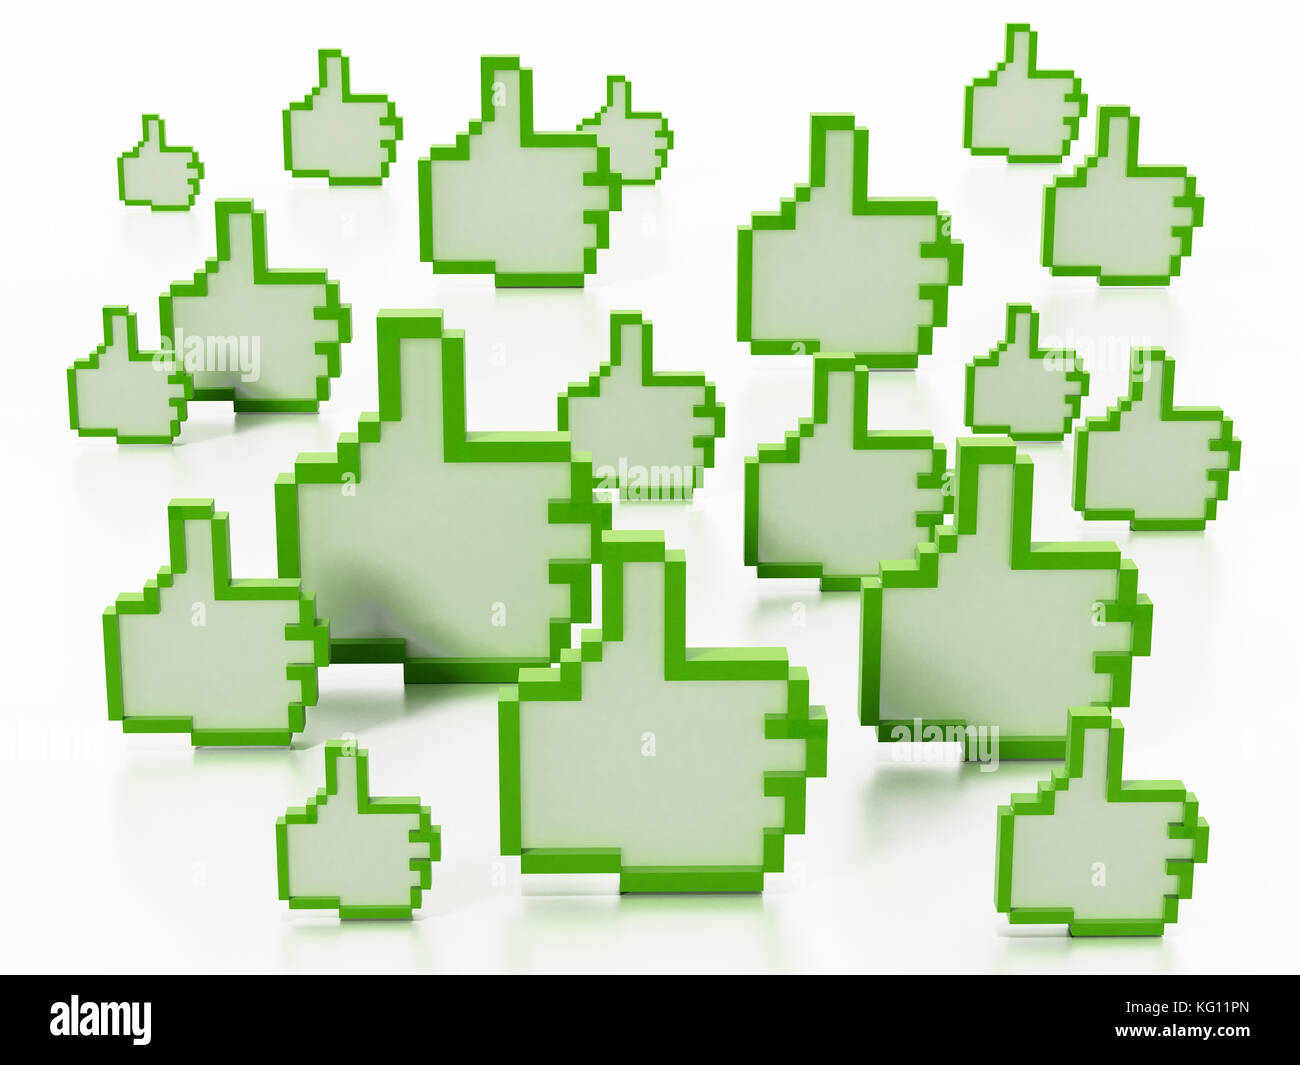 Thumbs up icônes isolé sur fond blanc. 3d illustration. Photo Stock